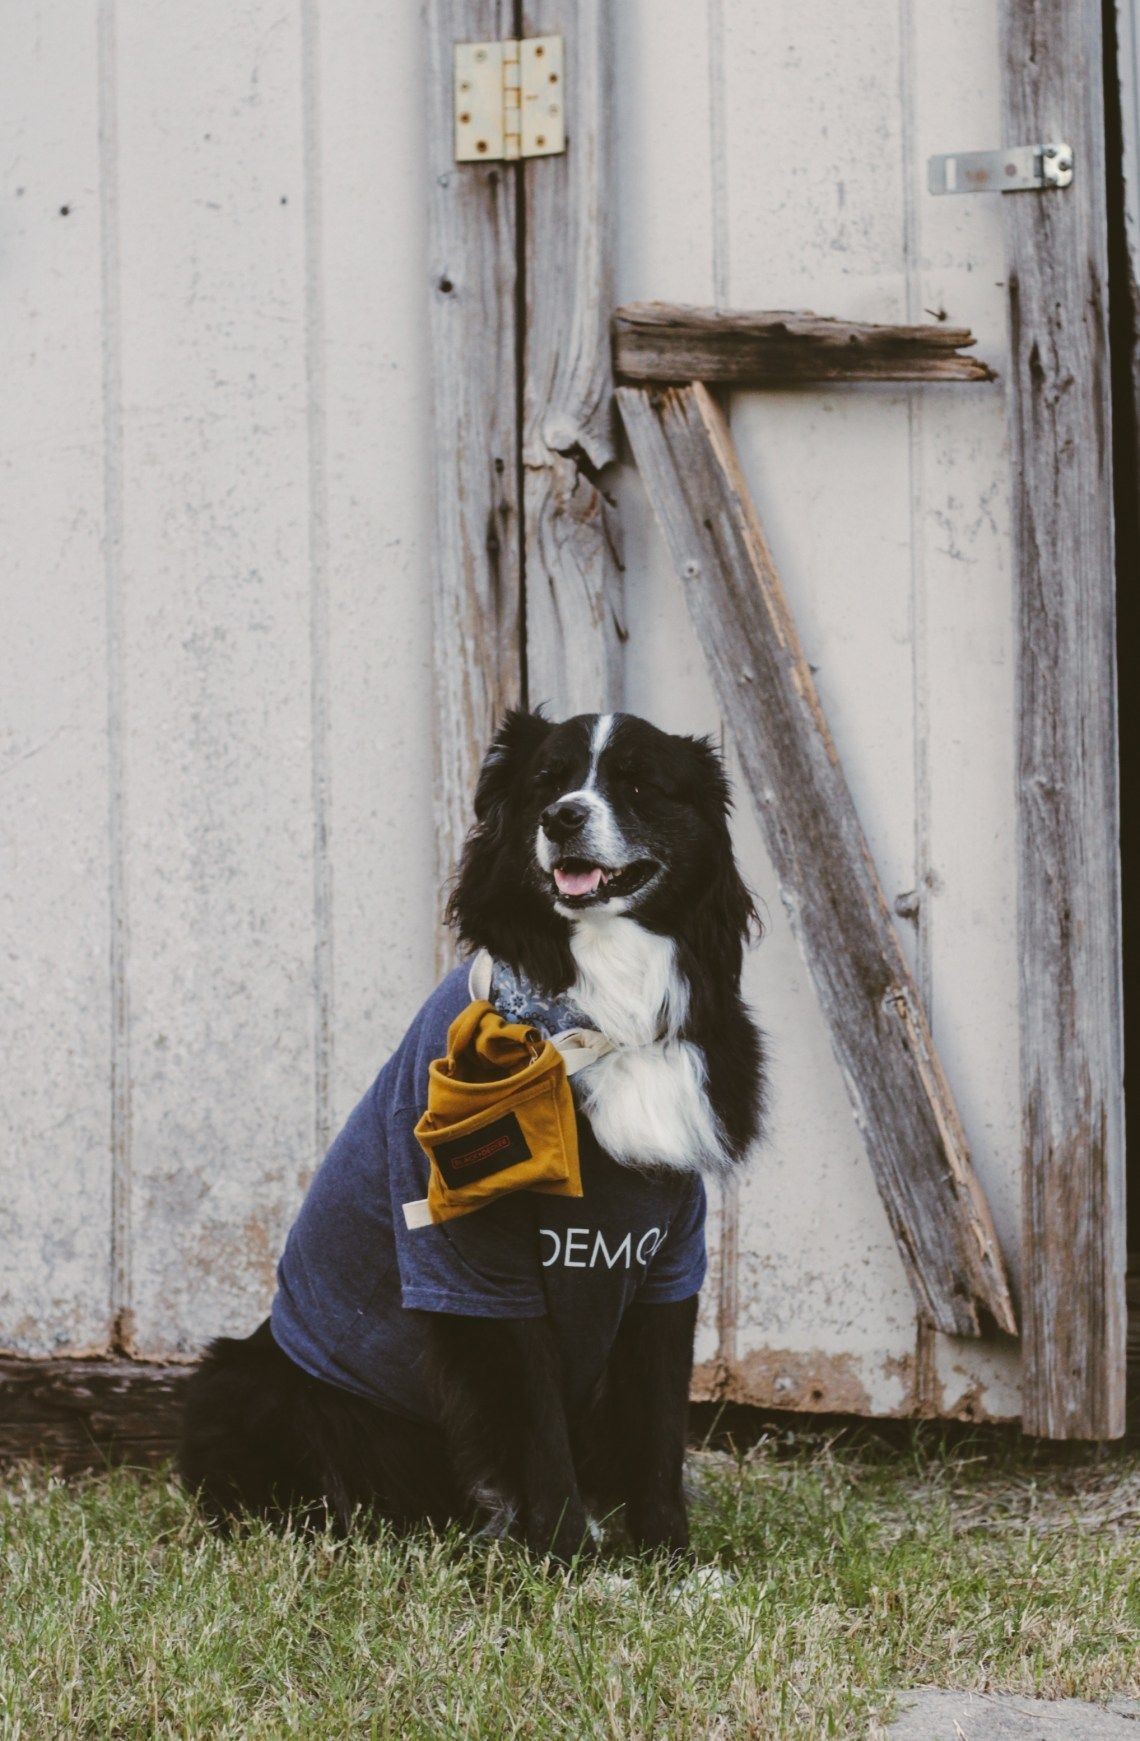 Chip and Joanna Gaines costume - for dogs! #chipandjoannagainescostume Chip and Joanna Gaines costume - for dogs! #chipandjoannagainescostume Chip and Joanna Gaines costume - for dogs! #chipandjoannagainescostume Chip and Joanna Gaines costume - for dogs! #chipandjoannagainescostume